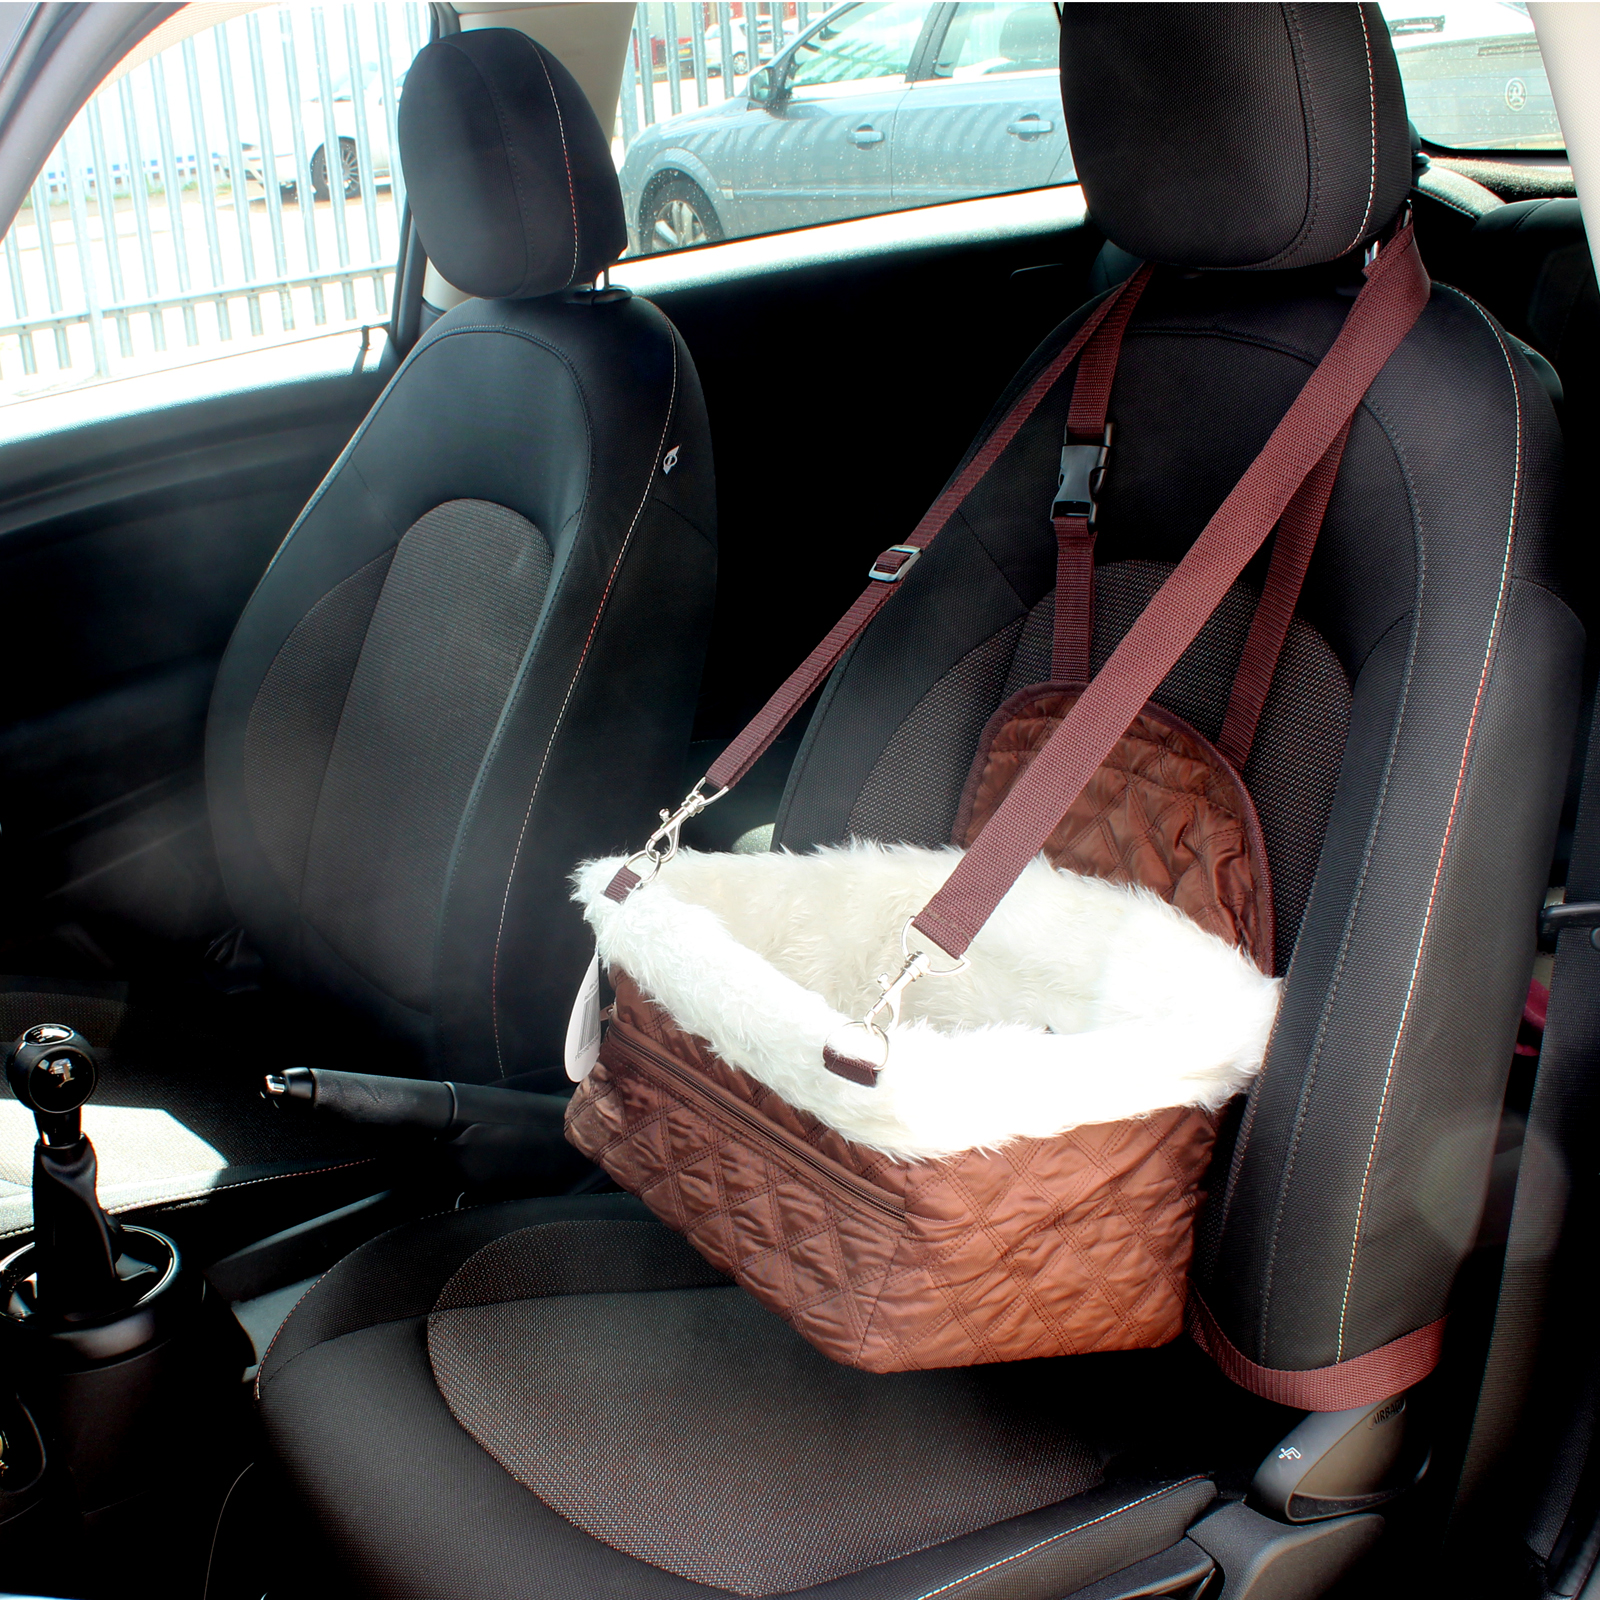 Me Amp My Pet Small Car Booster Seat Amp Carrier For Dog Puppy